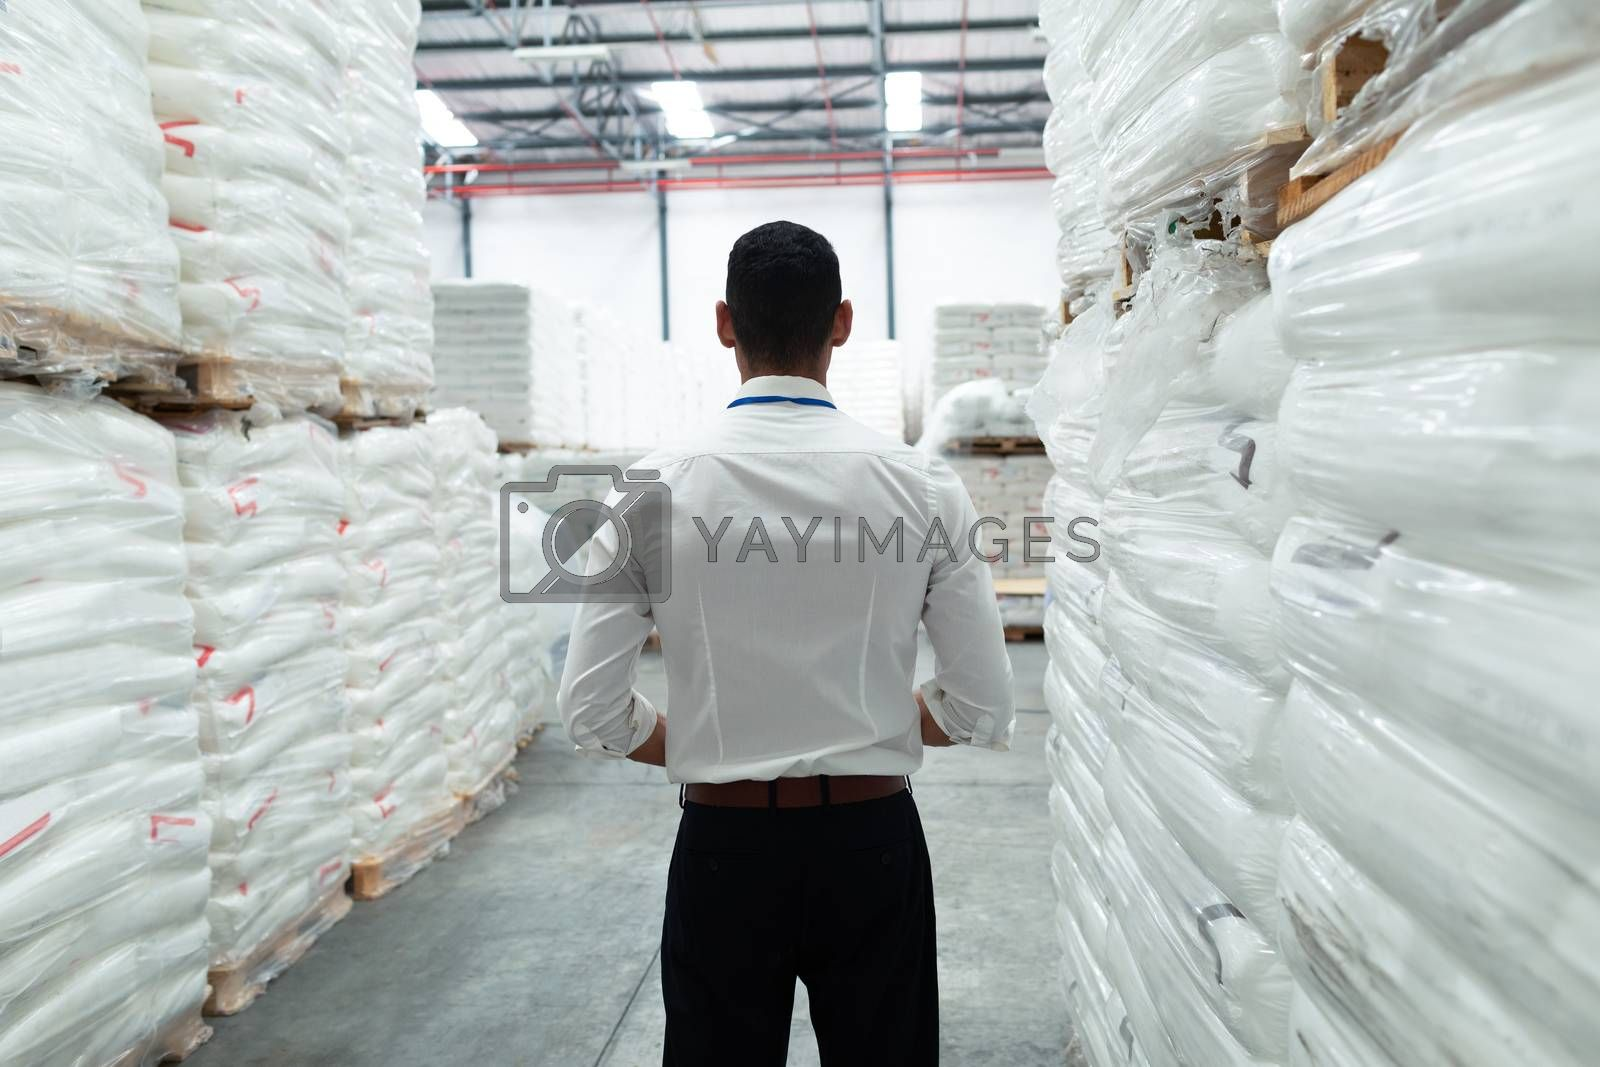 Rear view of thoughtful Caucasian male supervisor standing in warehouse. This is a freight transportation and distribution warehouse. Industrial and industrial workers concept